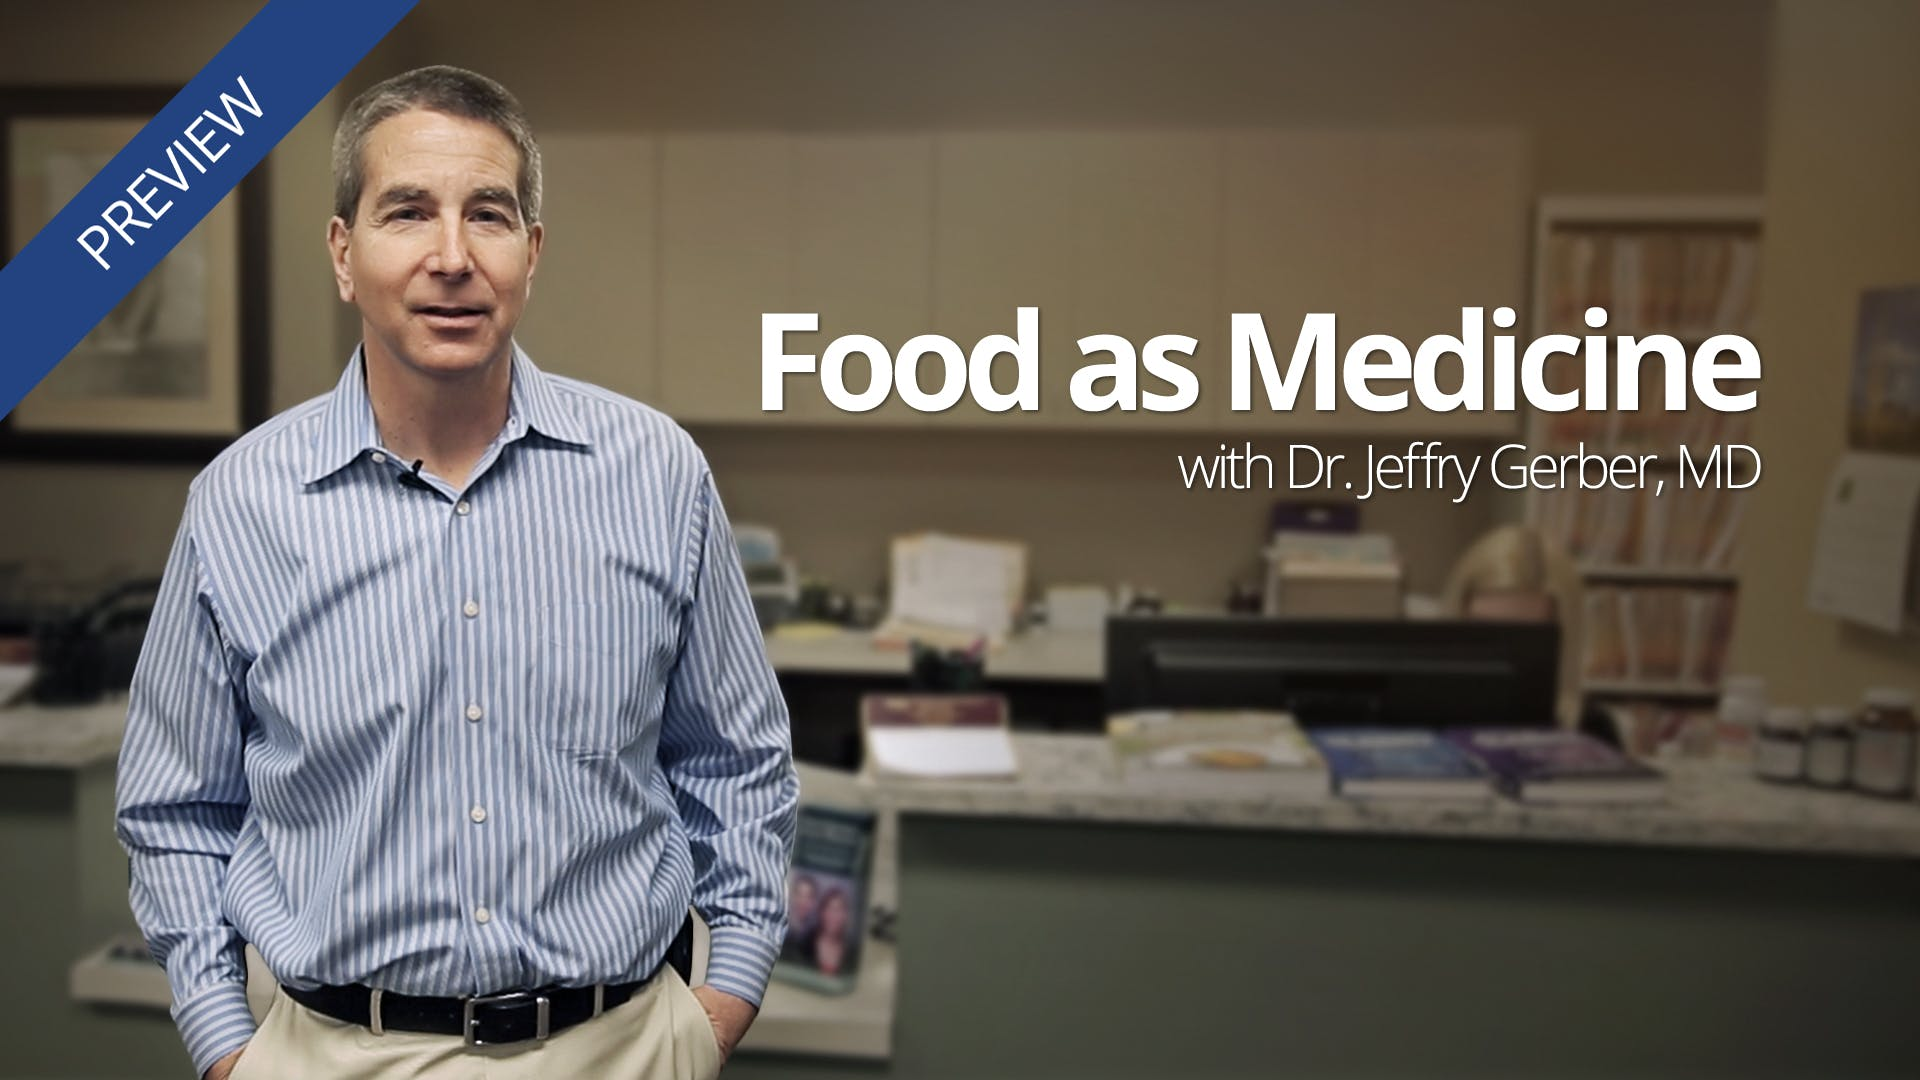 A day at Dr. Gerber's low-carb clinic